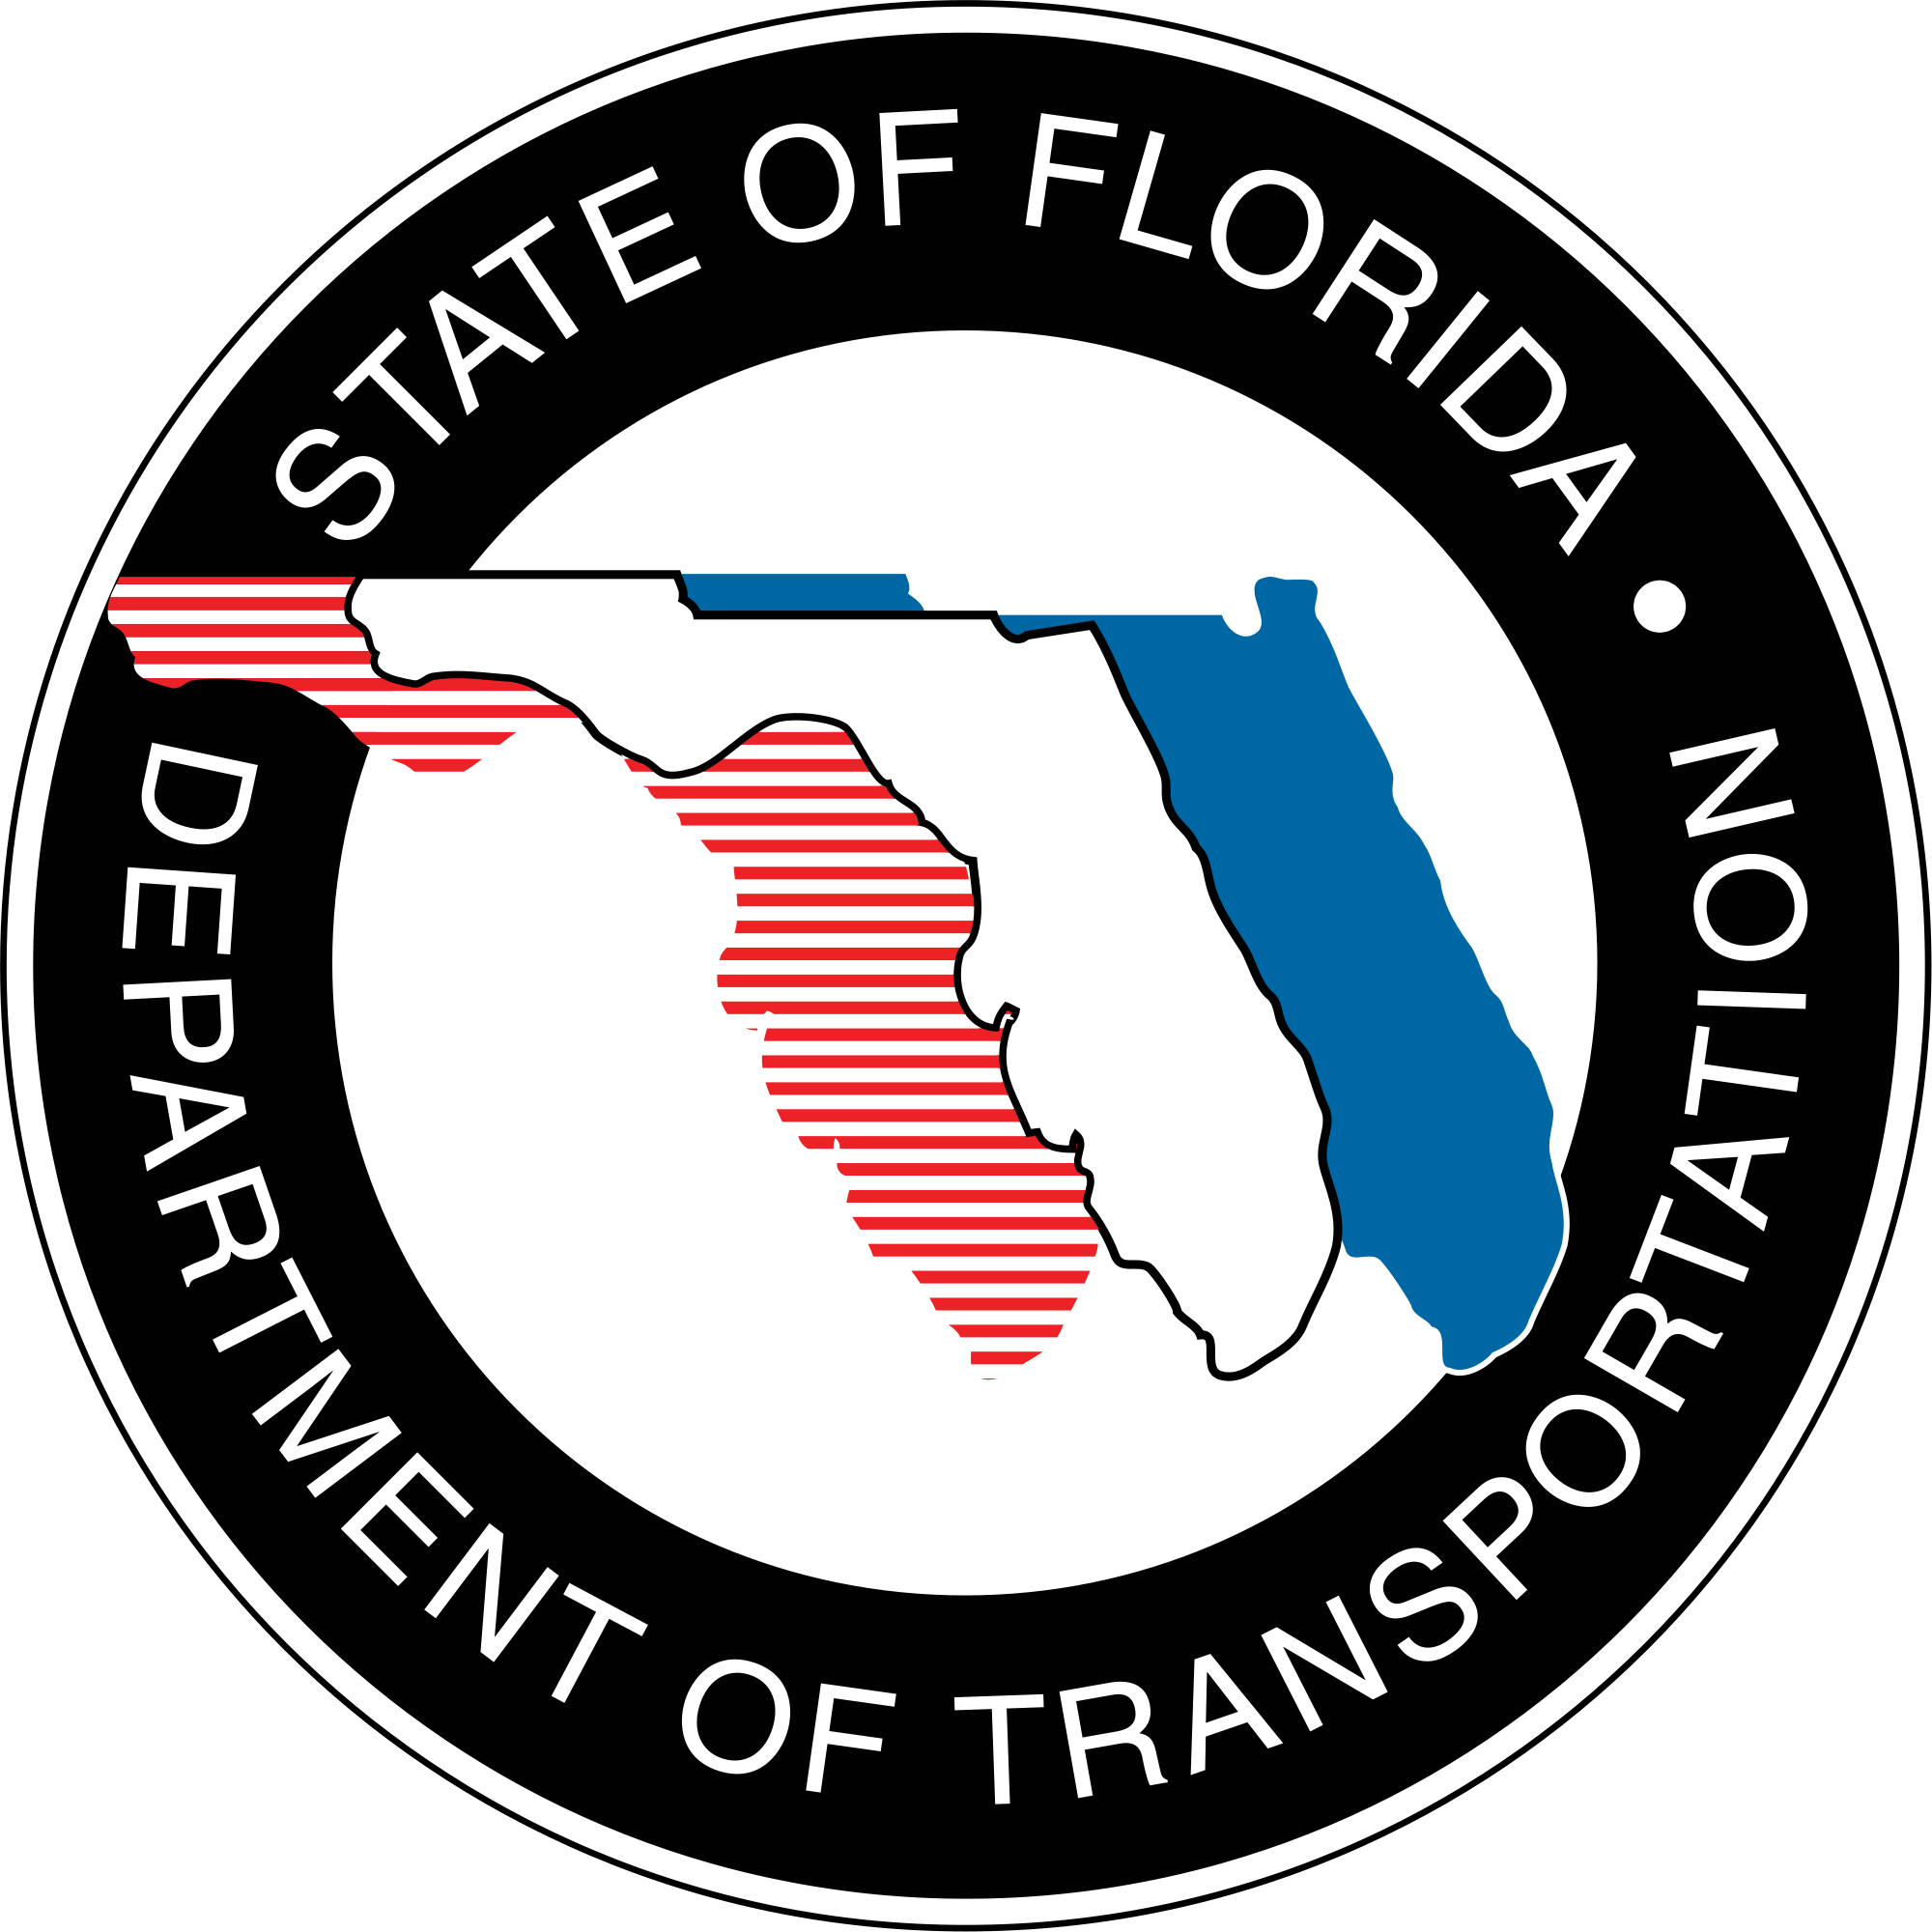 State of florida seal png. File the department transportation